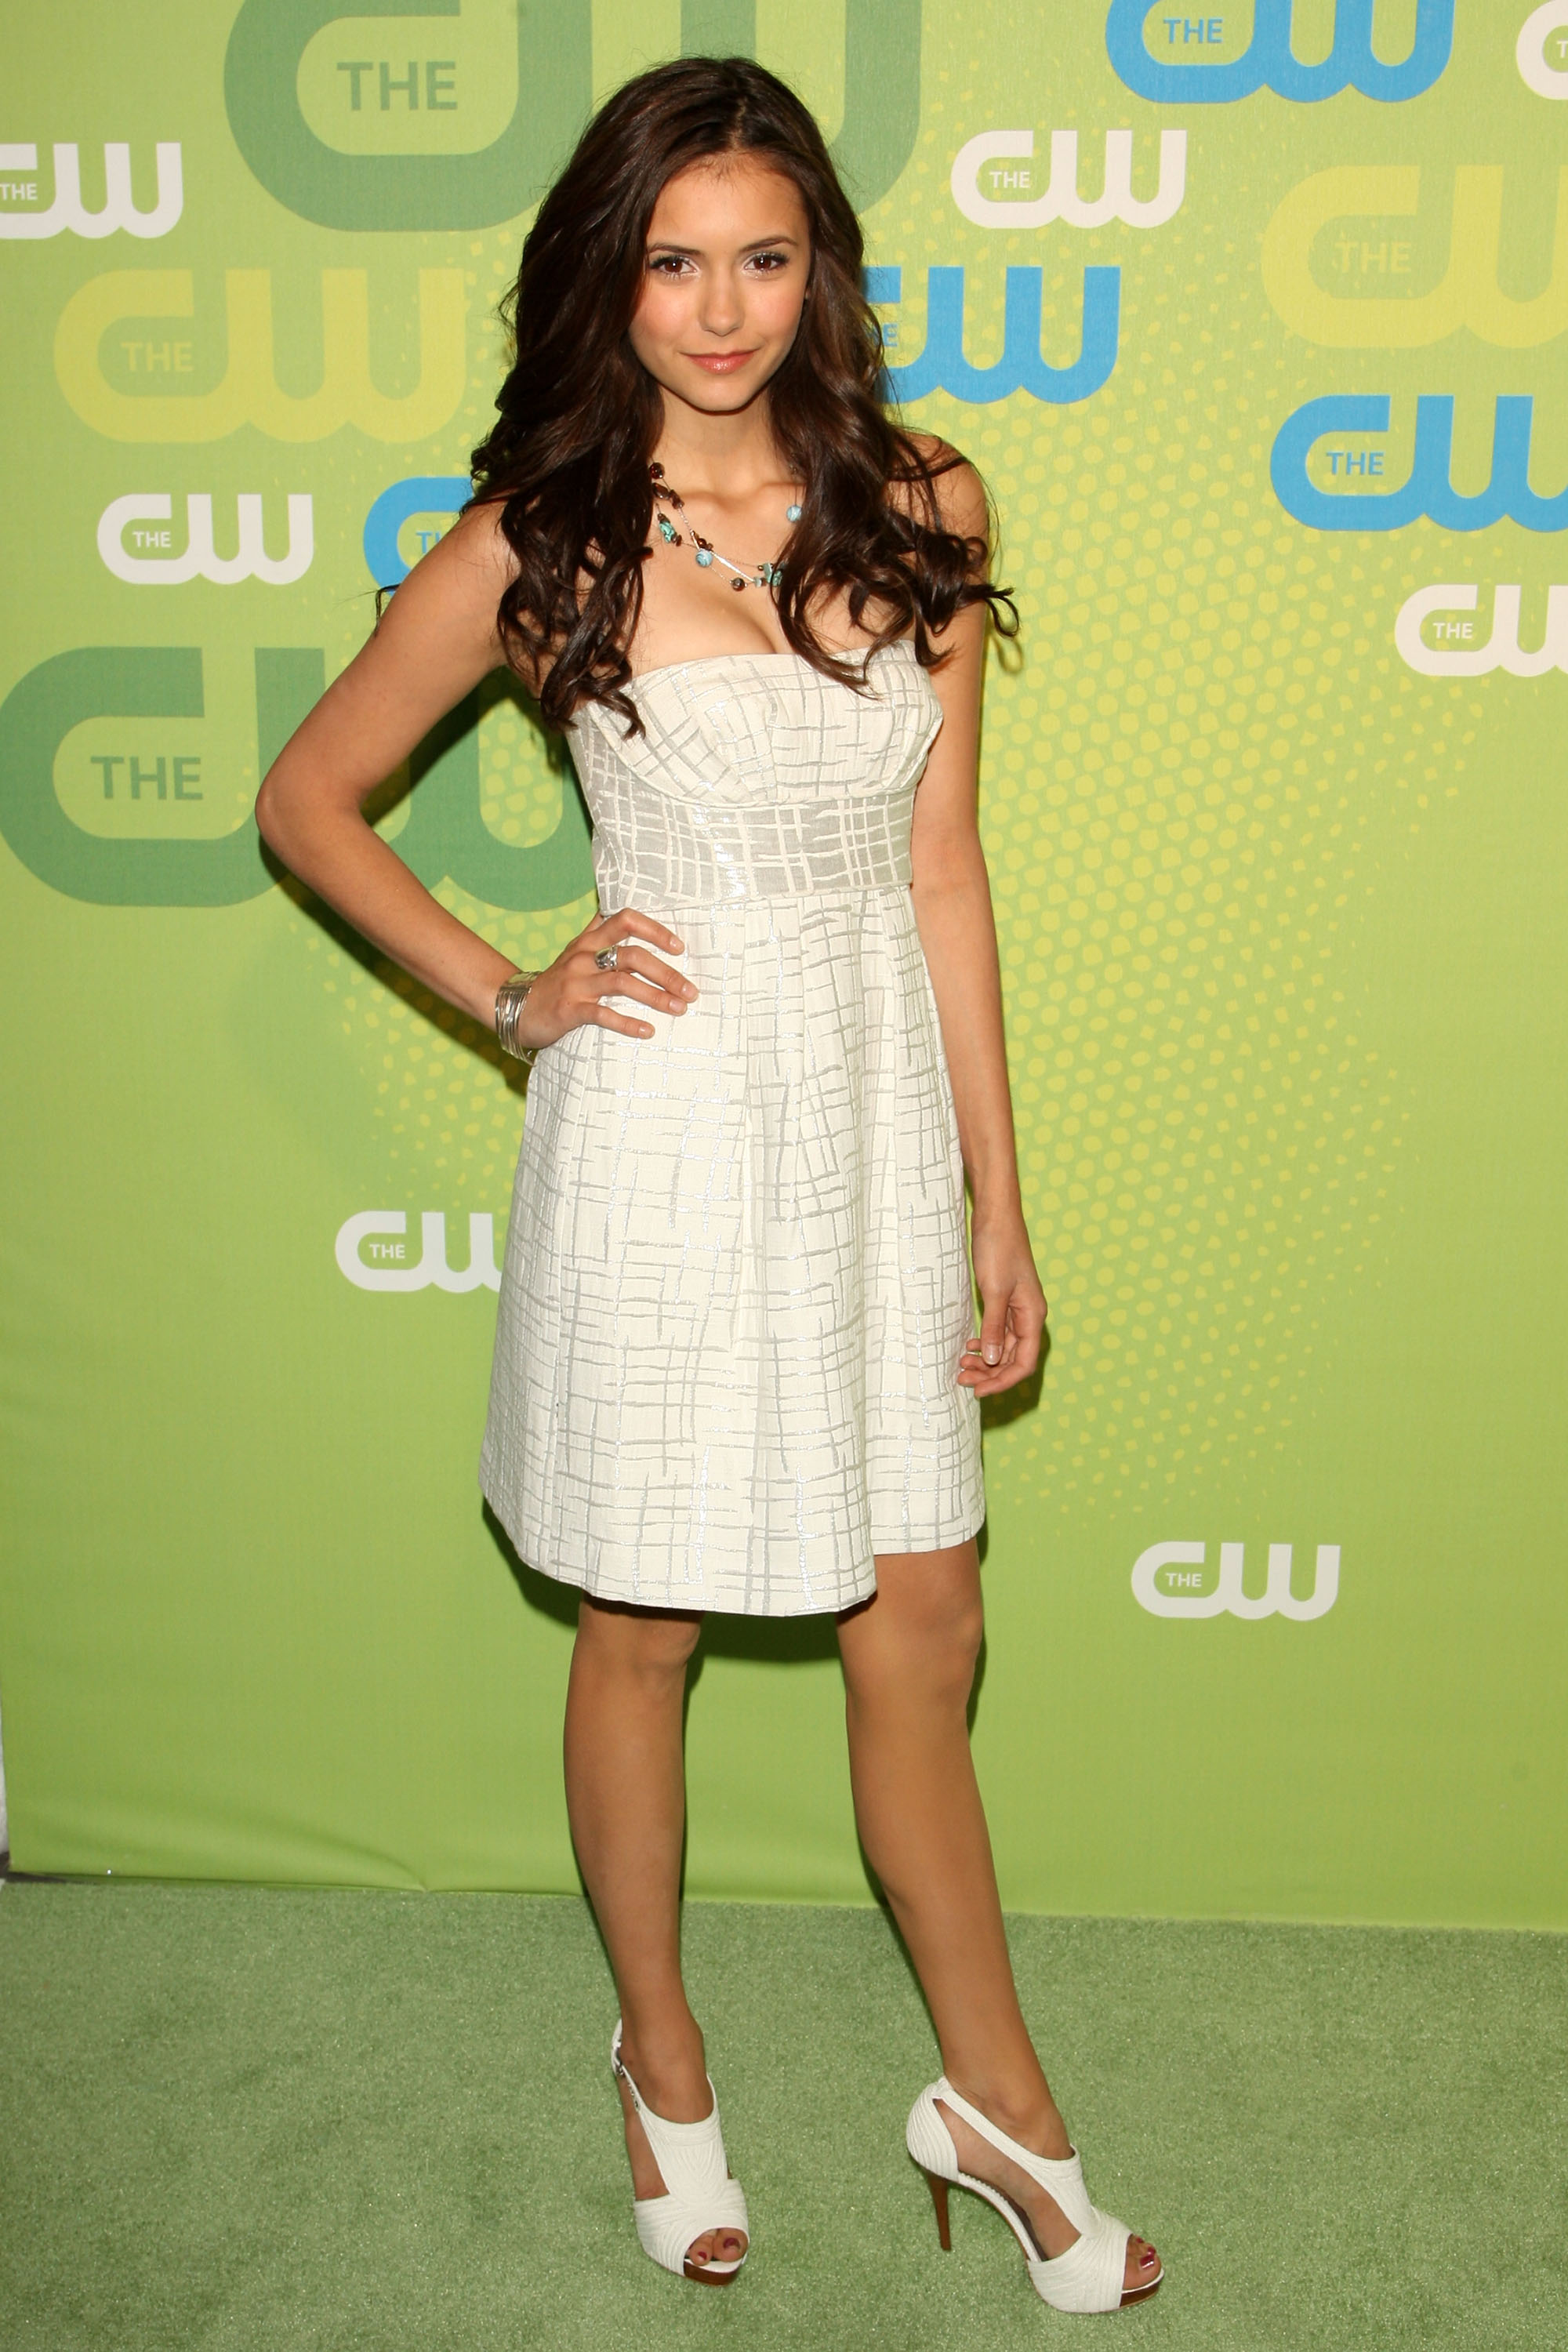 For The CW's 2009 upfronts, the actress wore a strapless LWD with matching white sandals.